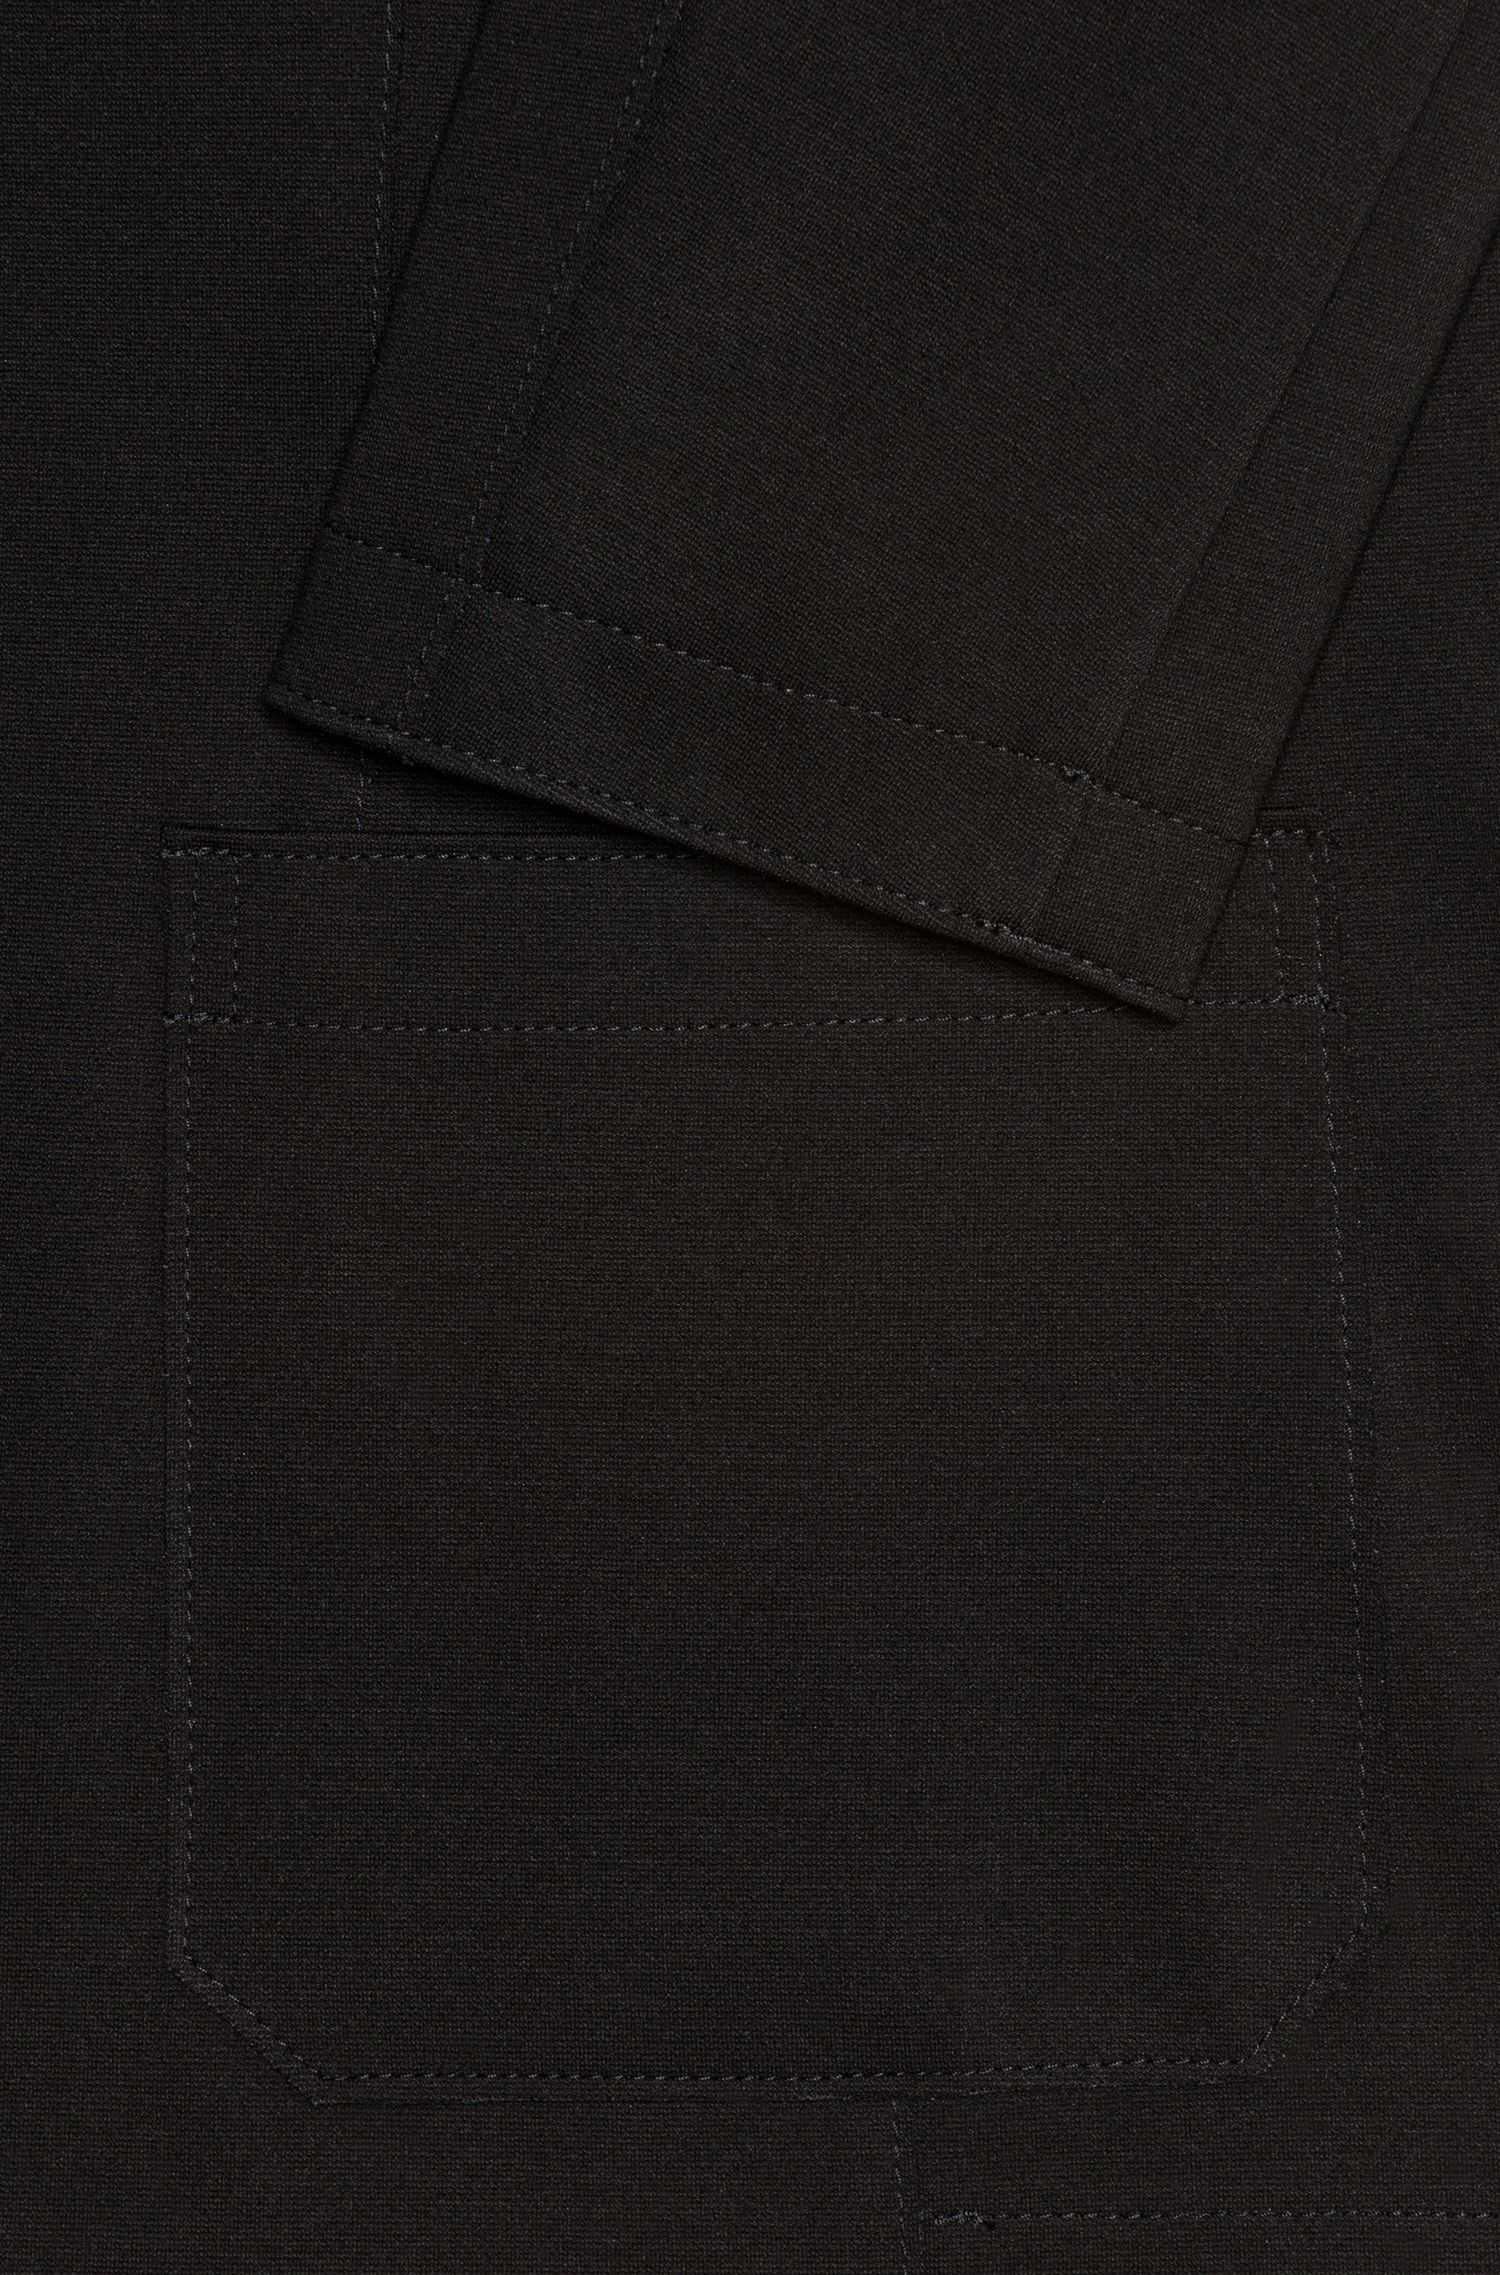 Open Cut Jersey, Extra Slim Fit | 'Ardis', Black